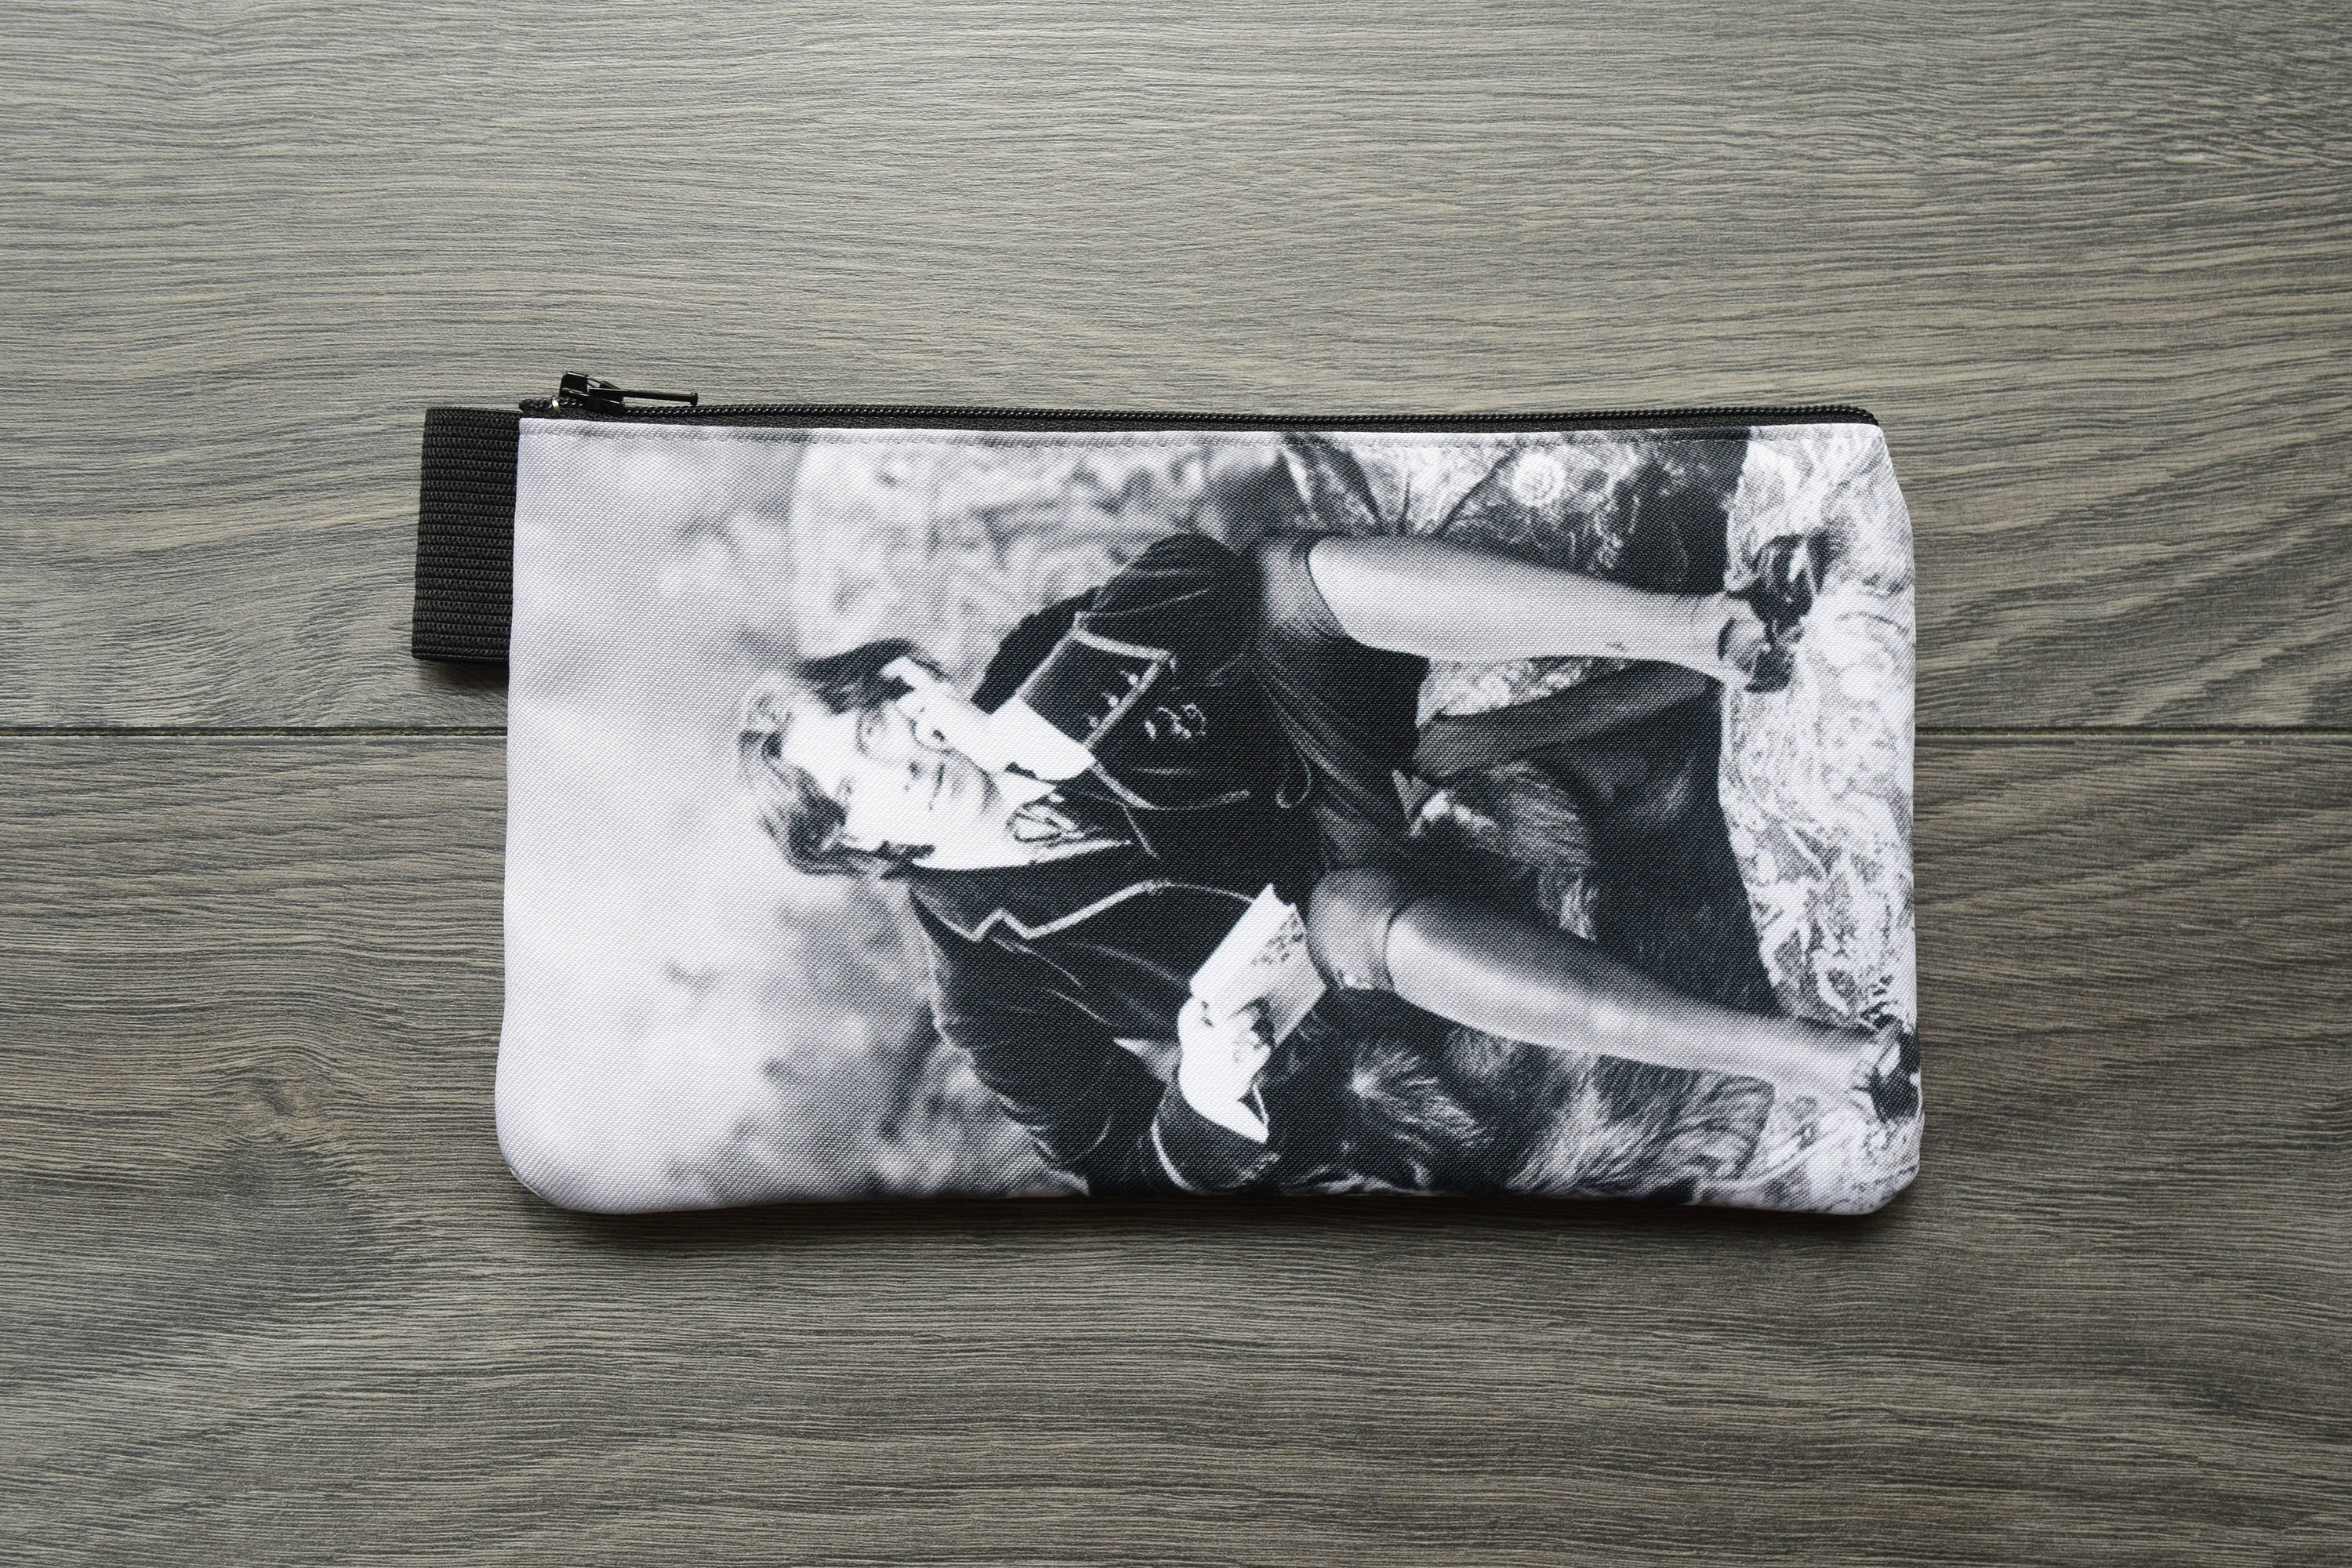 oscar wilde - playwright - lined twill pencil case - vintage portrait